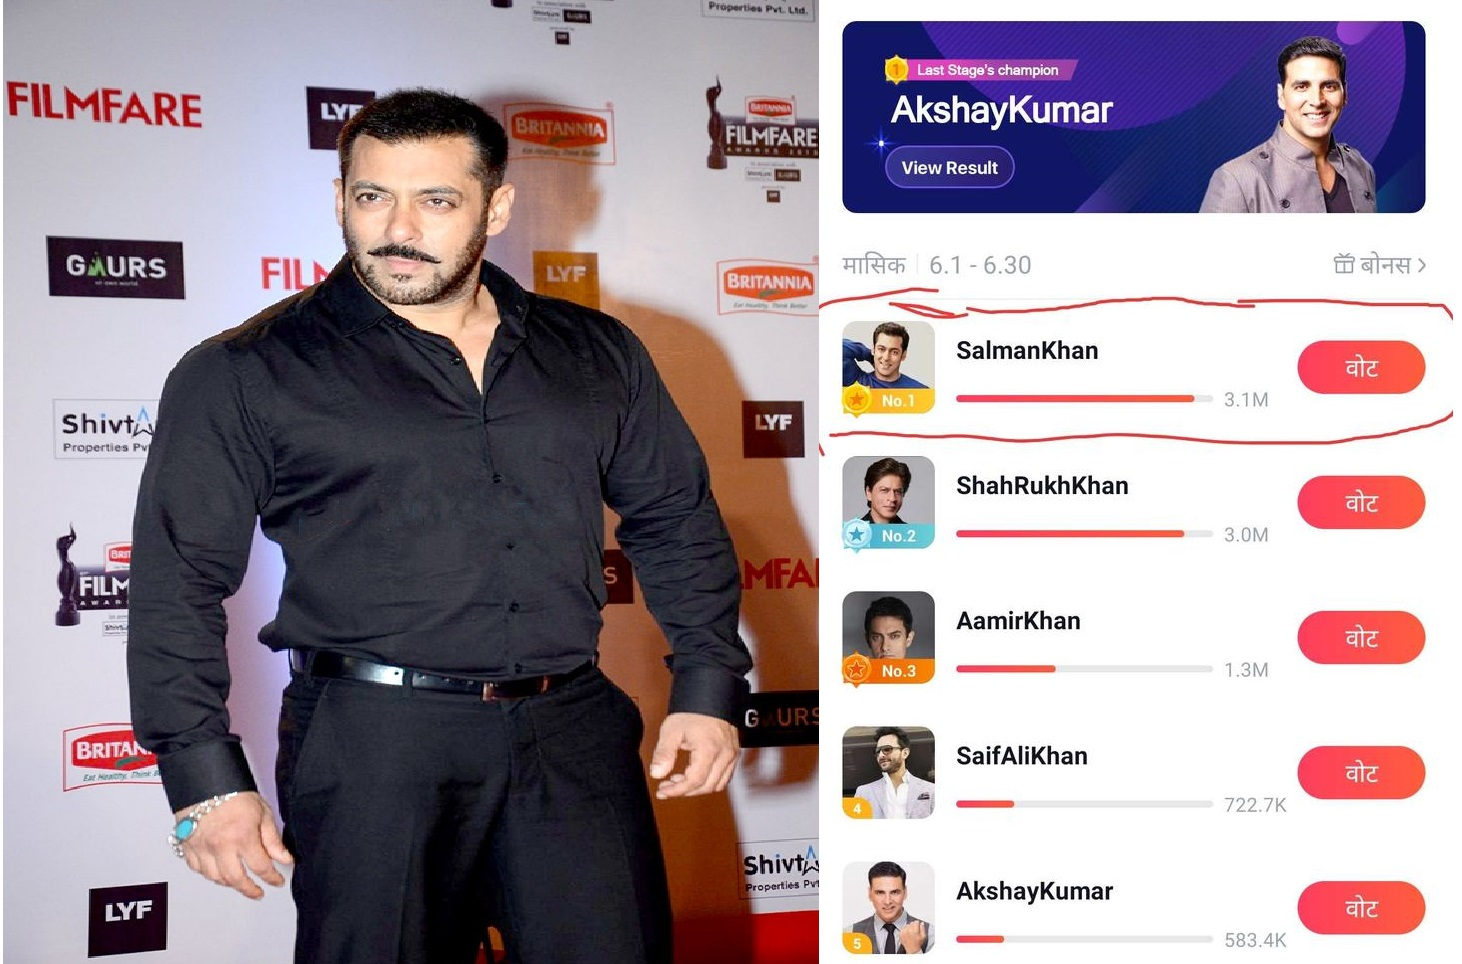 salman-khan-with-3.1-million-votes-most-liked-bollywood-Khan-on-halo